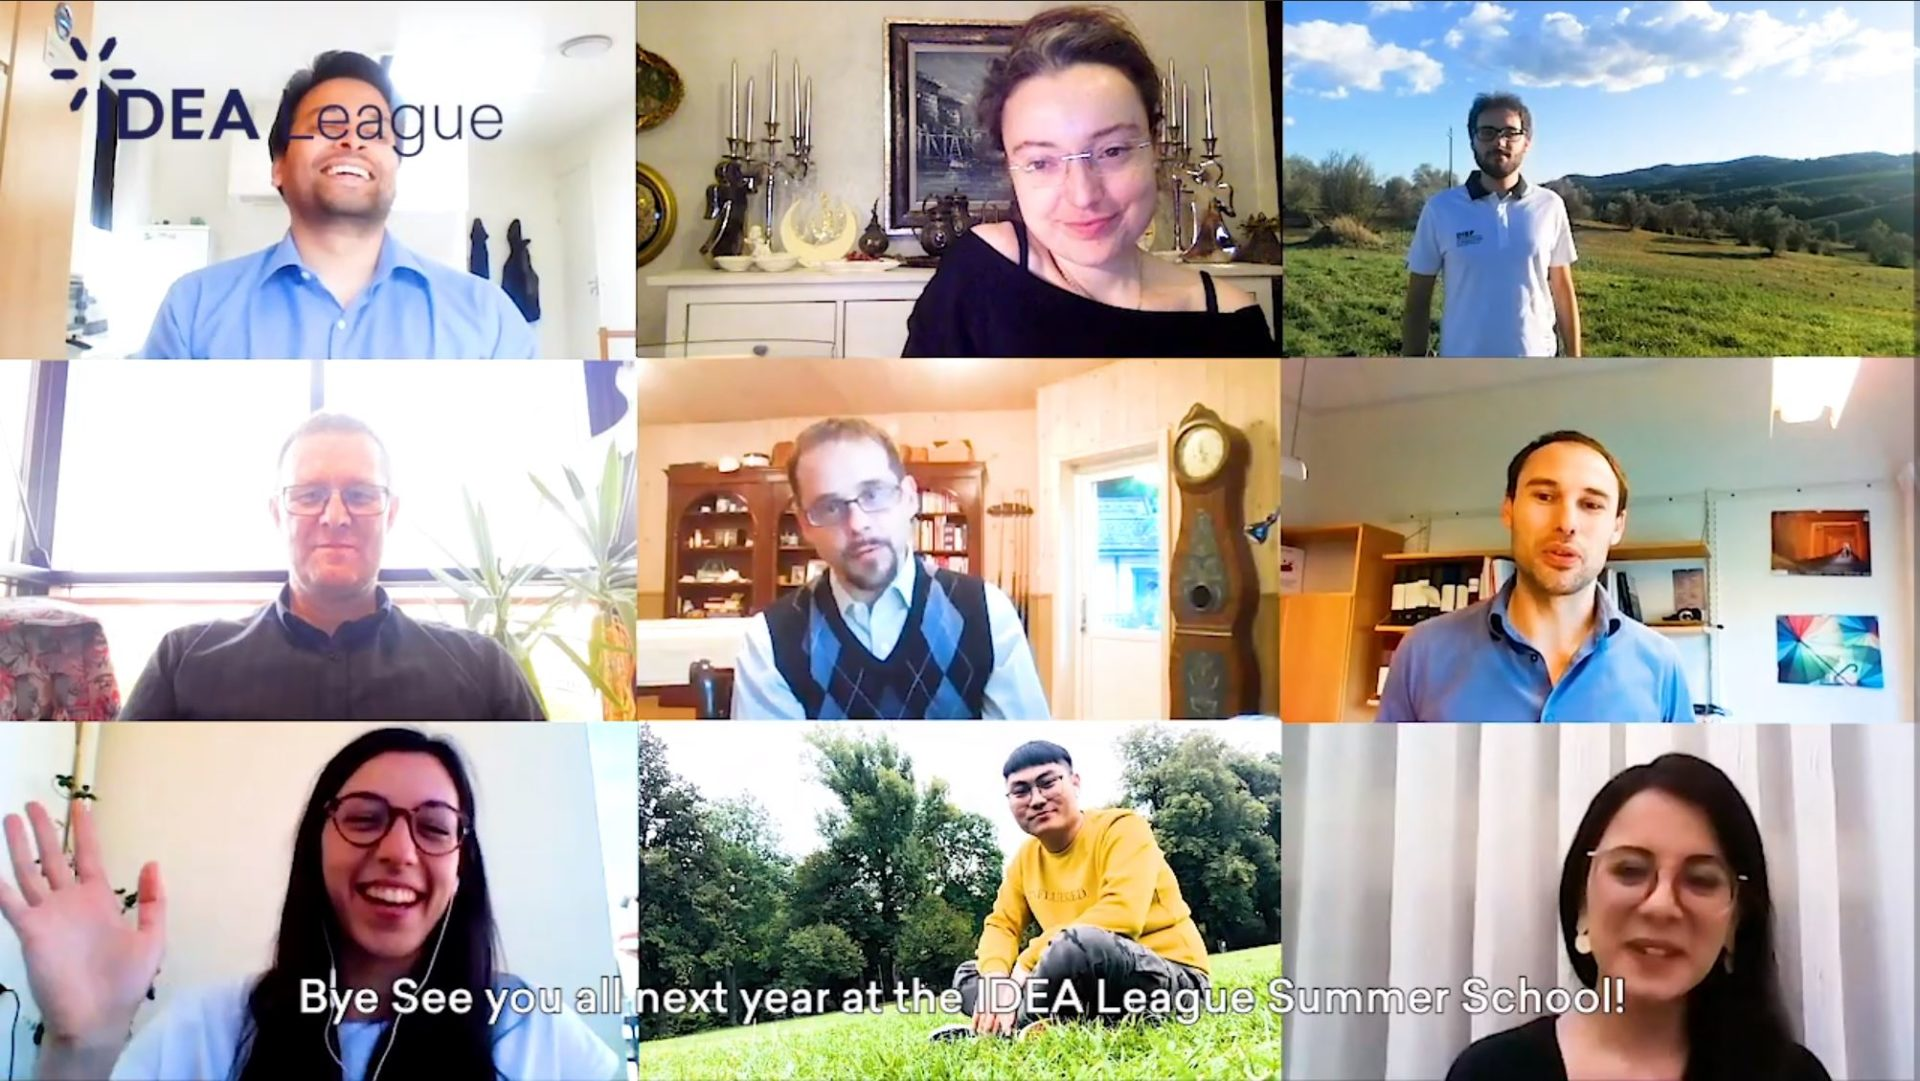 Video Screenshot with various testimonials of Summer School at Chalmers (IDEA League)